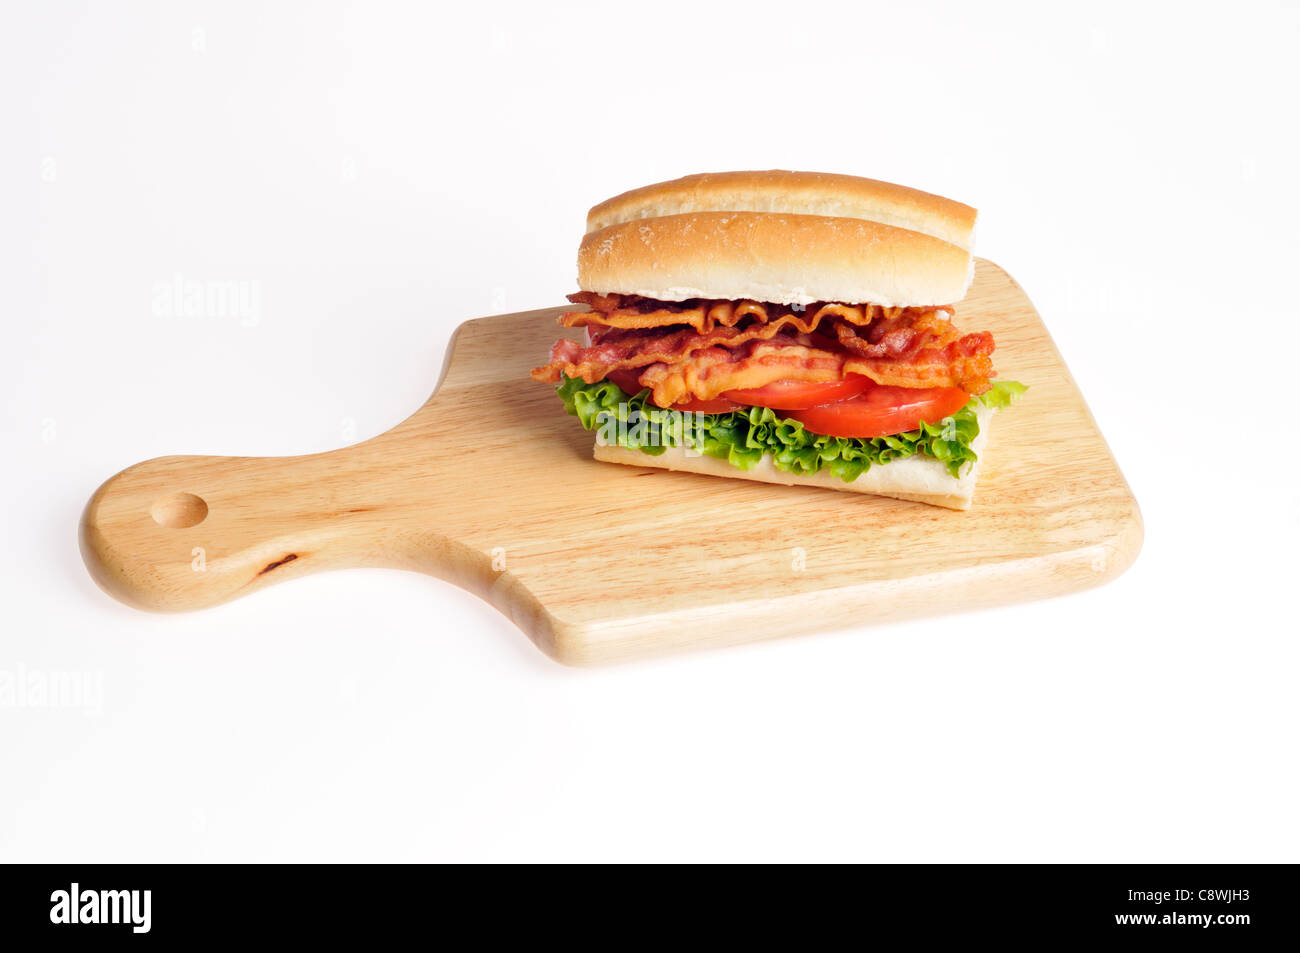 Bacon, Lettuce and Tomato BLT sandwich on a  bread roll on a wood cutting board on a white background. USA - Stock Image